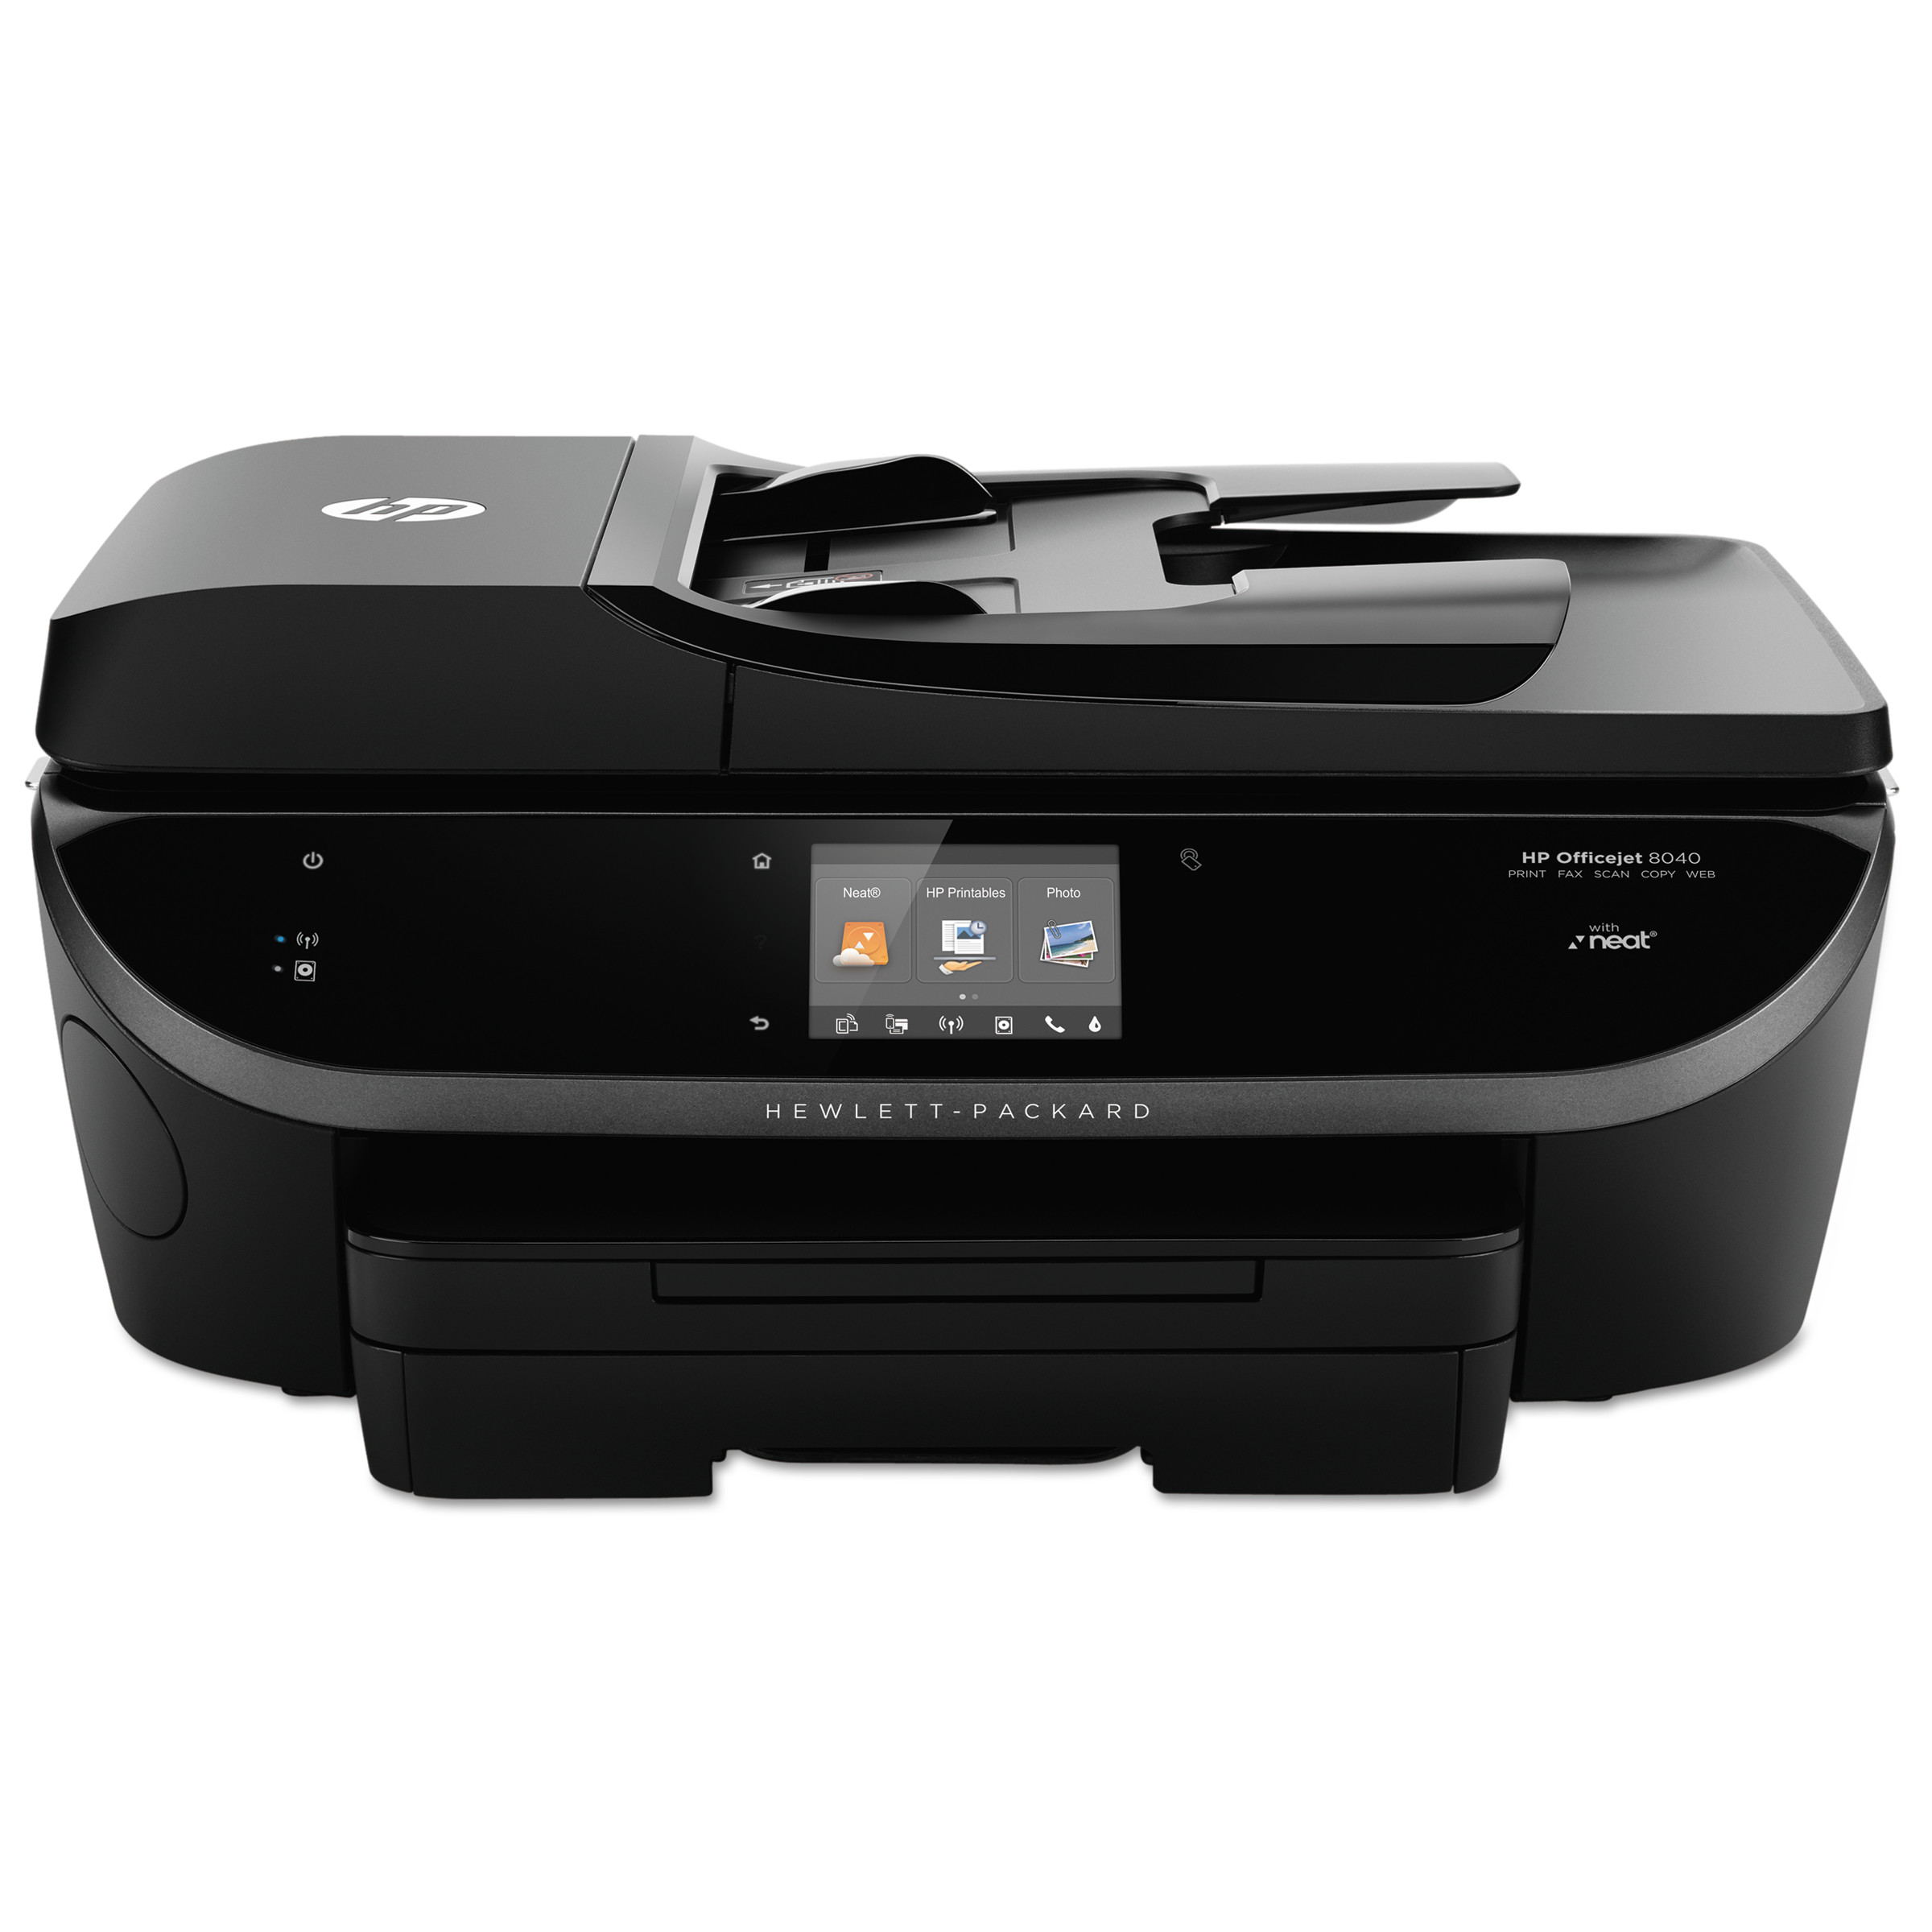 HP Officejet 8040 Wireless e-All-in-One Printer, Copy Fax Print Scan by HP